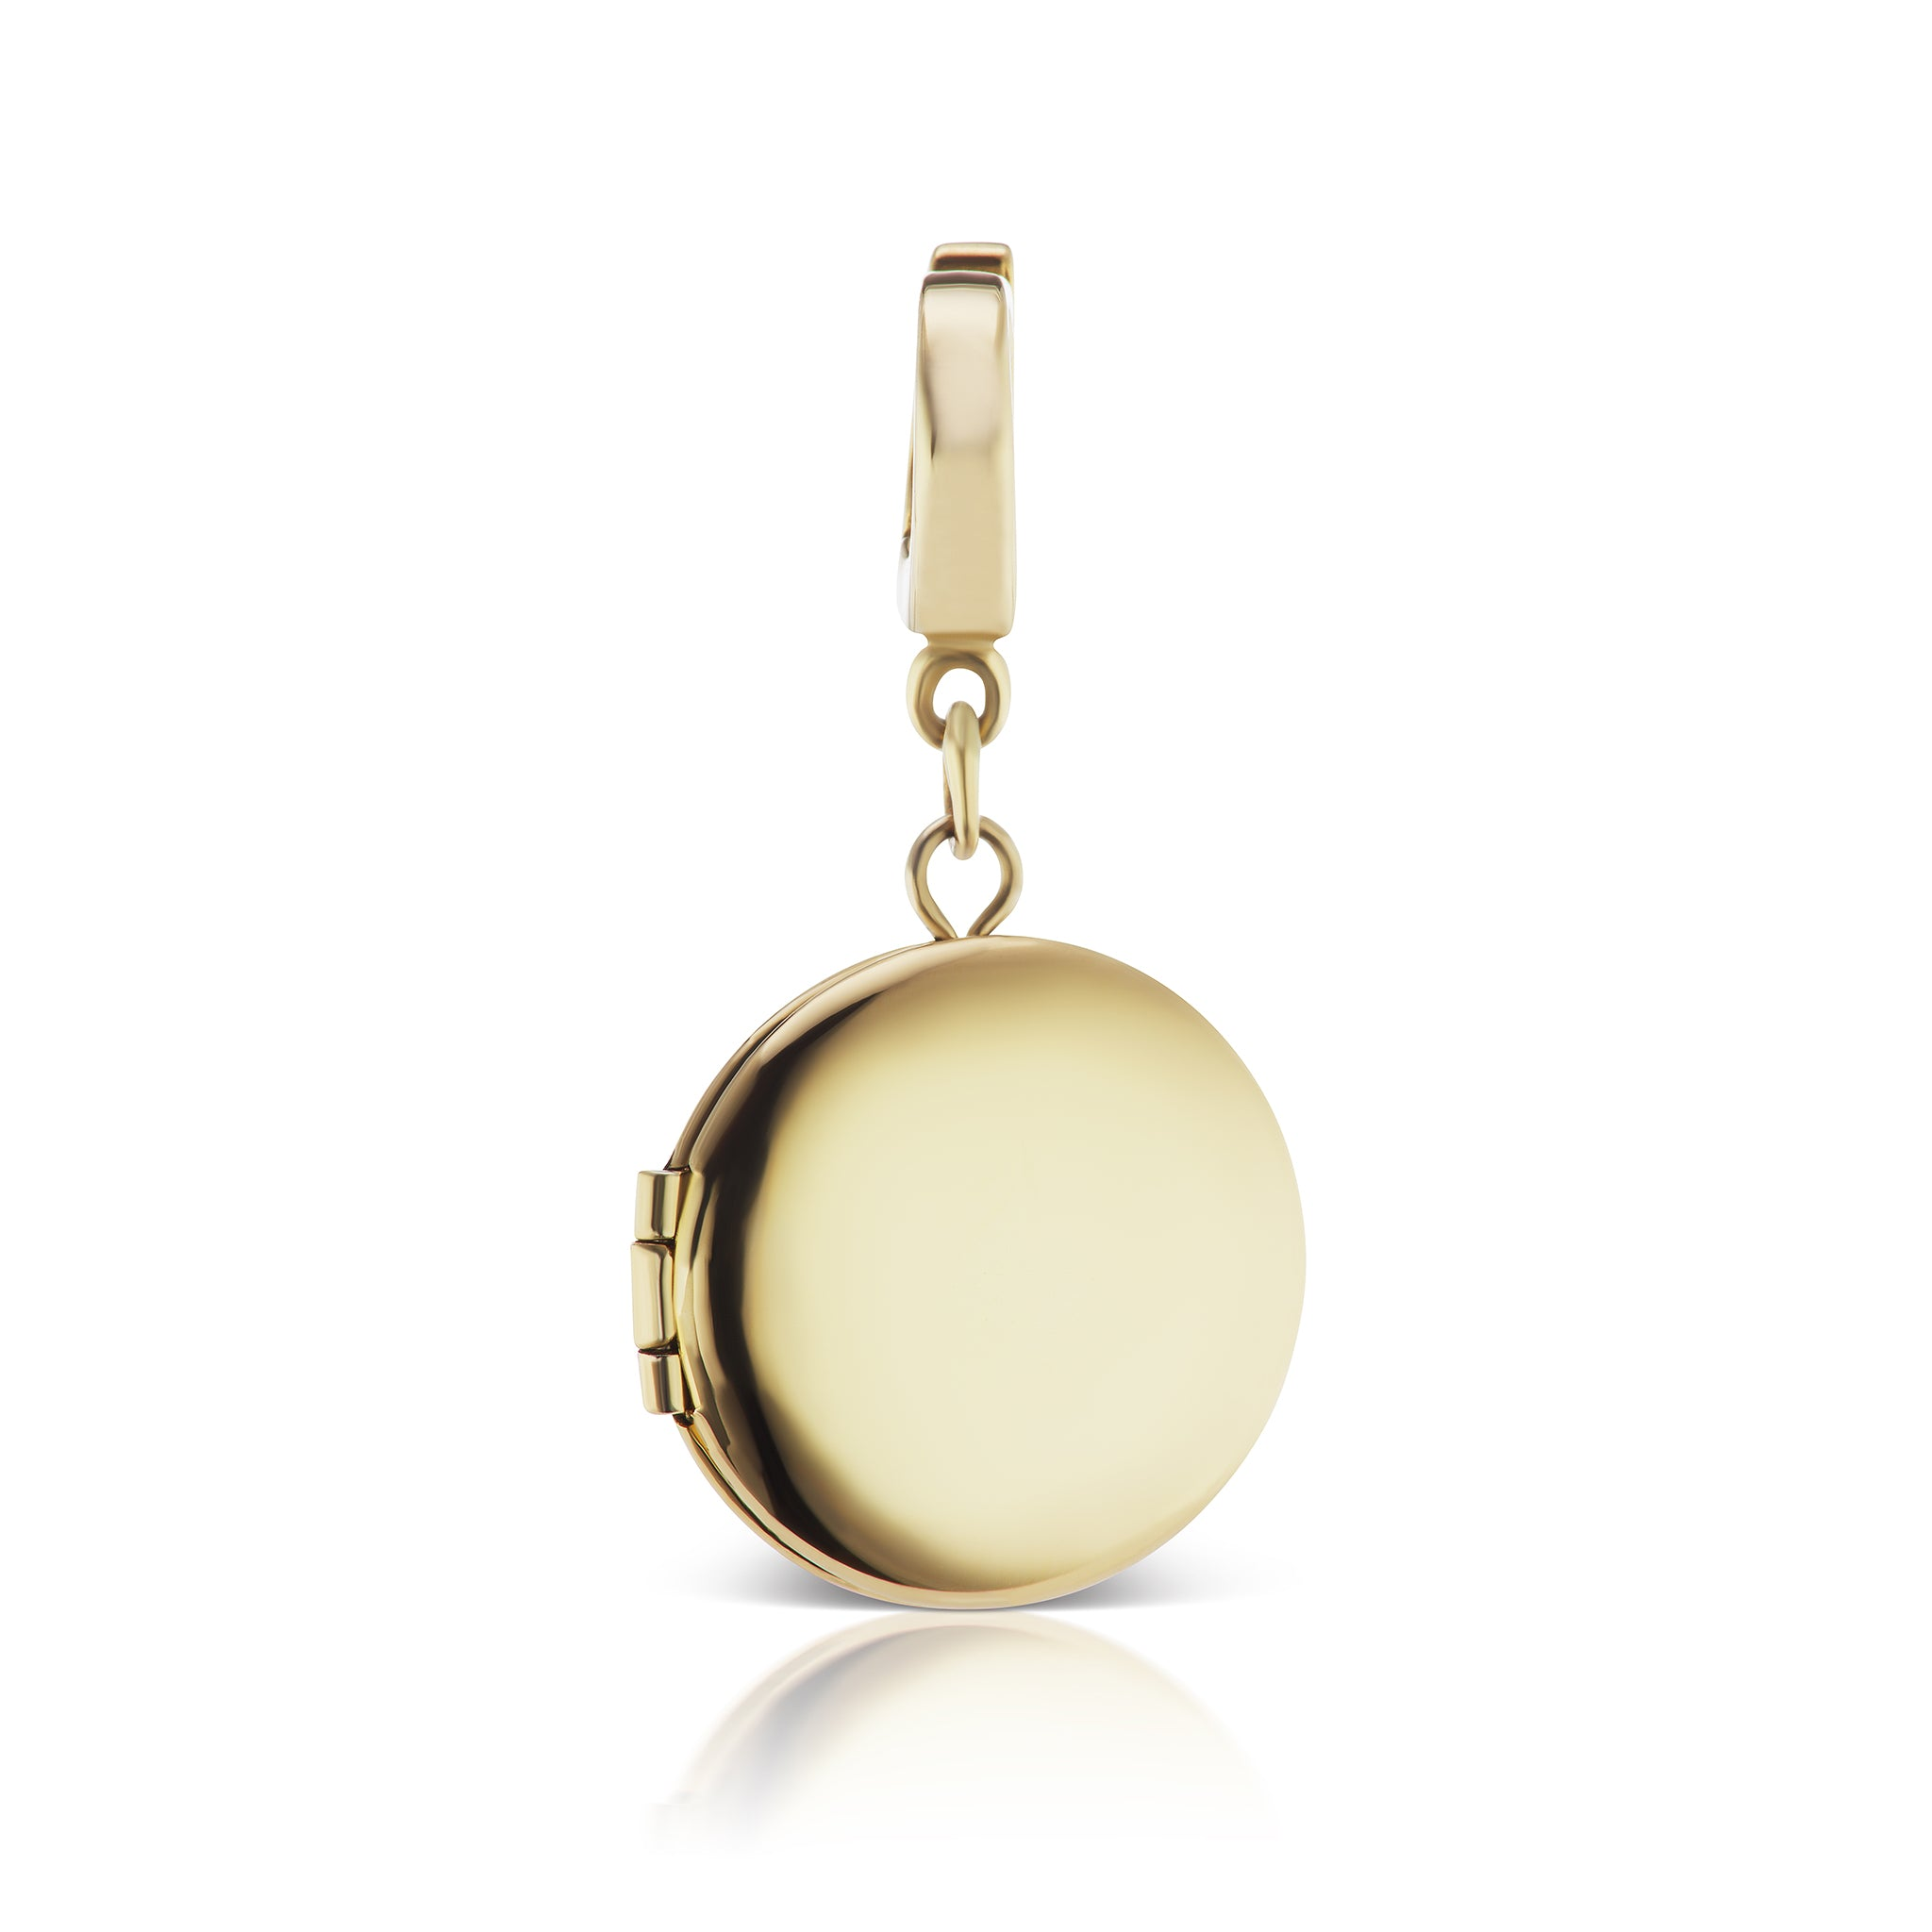 The Gold Circle Locket Charm